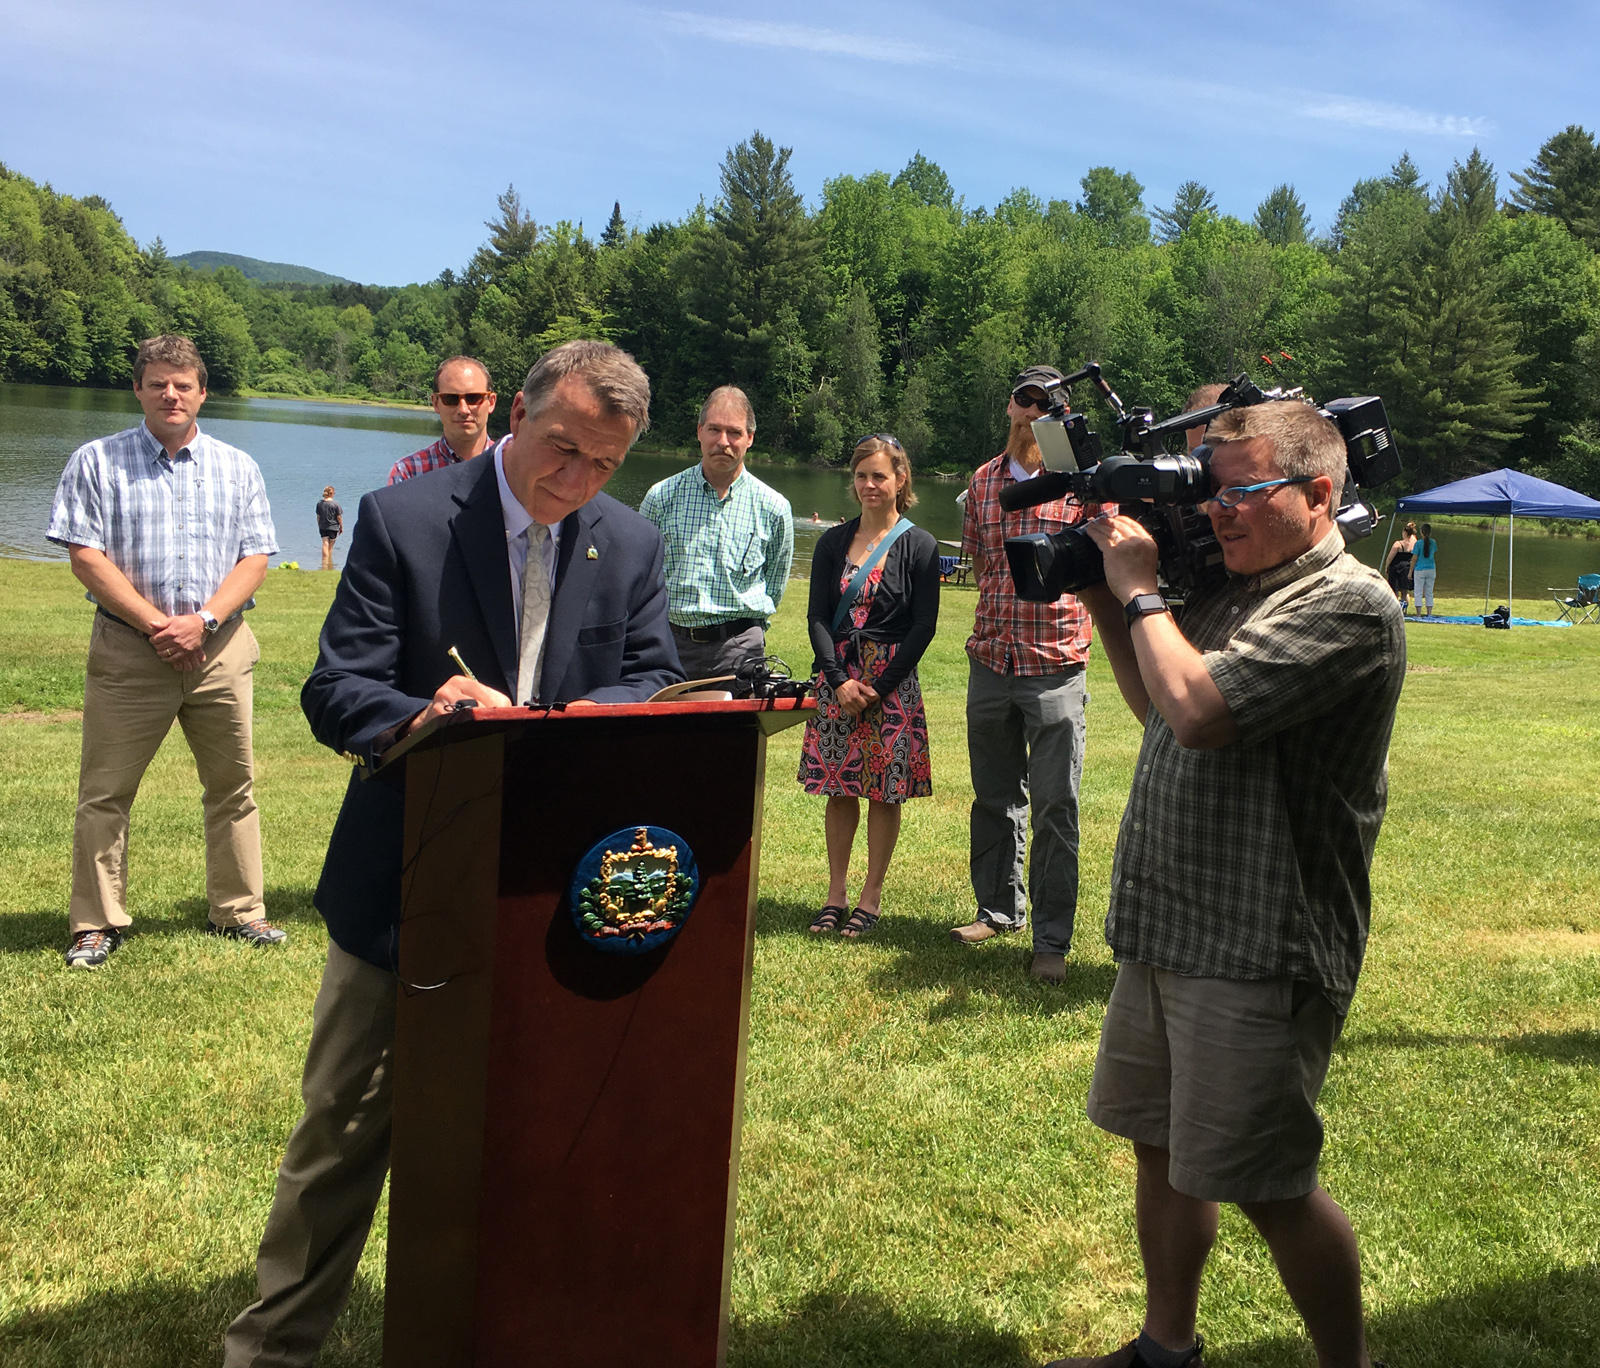 Outdoor Recreation: Vermont Group To Promote Outdoor Business Opportunities